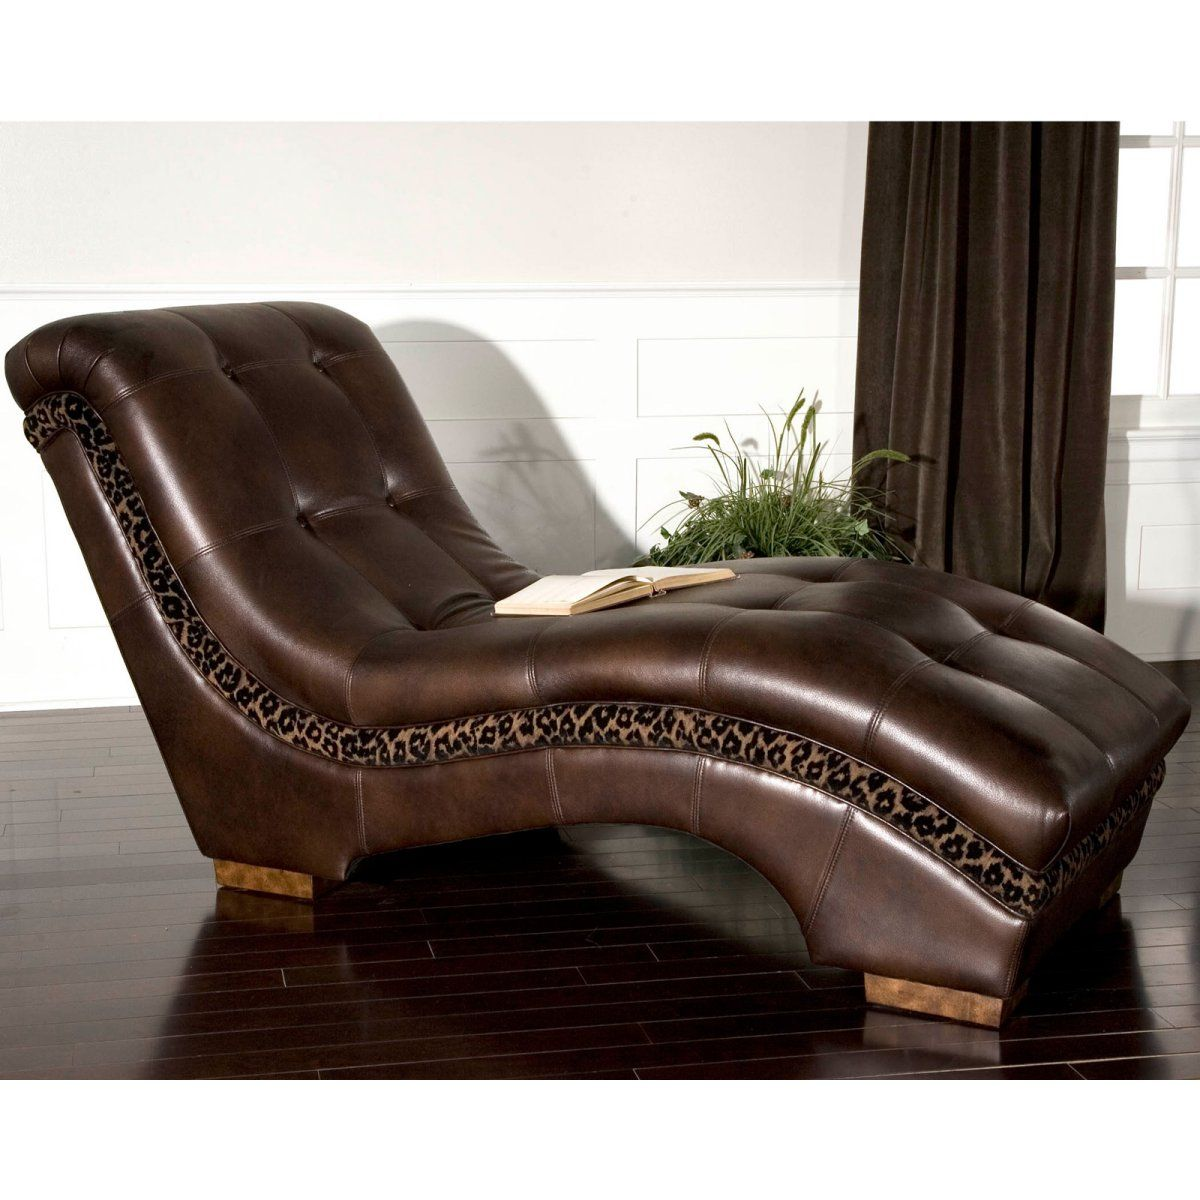 Divinity Chaise Lounge With Leopard Print Accent